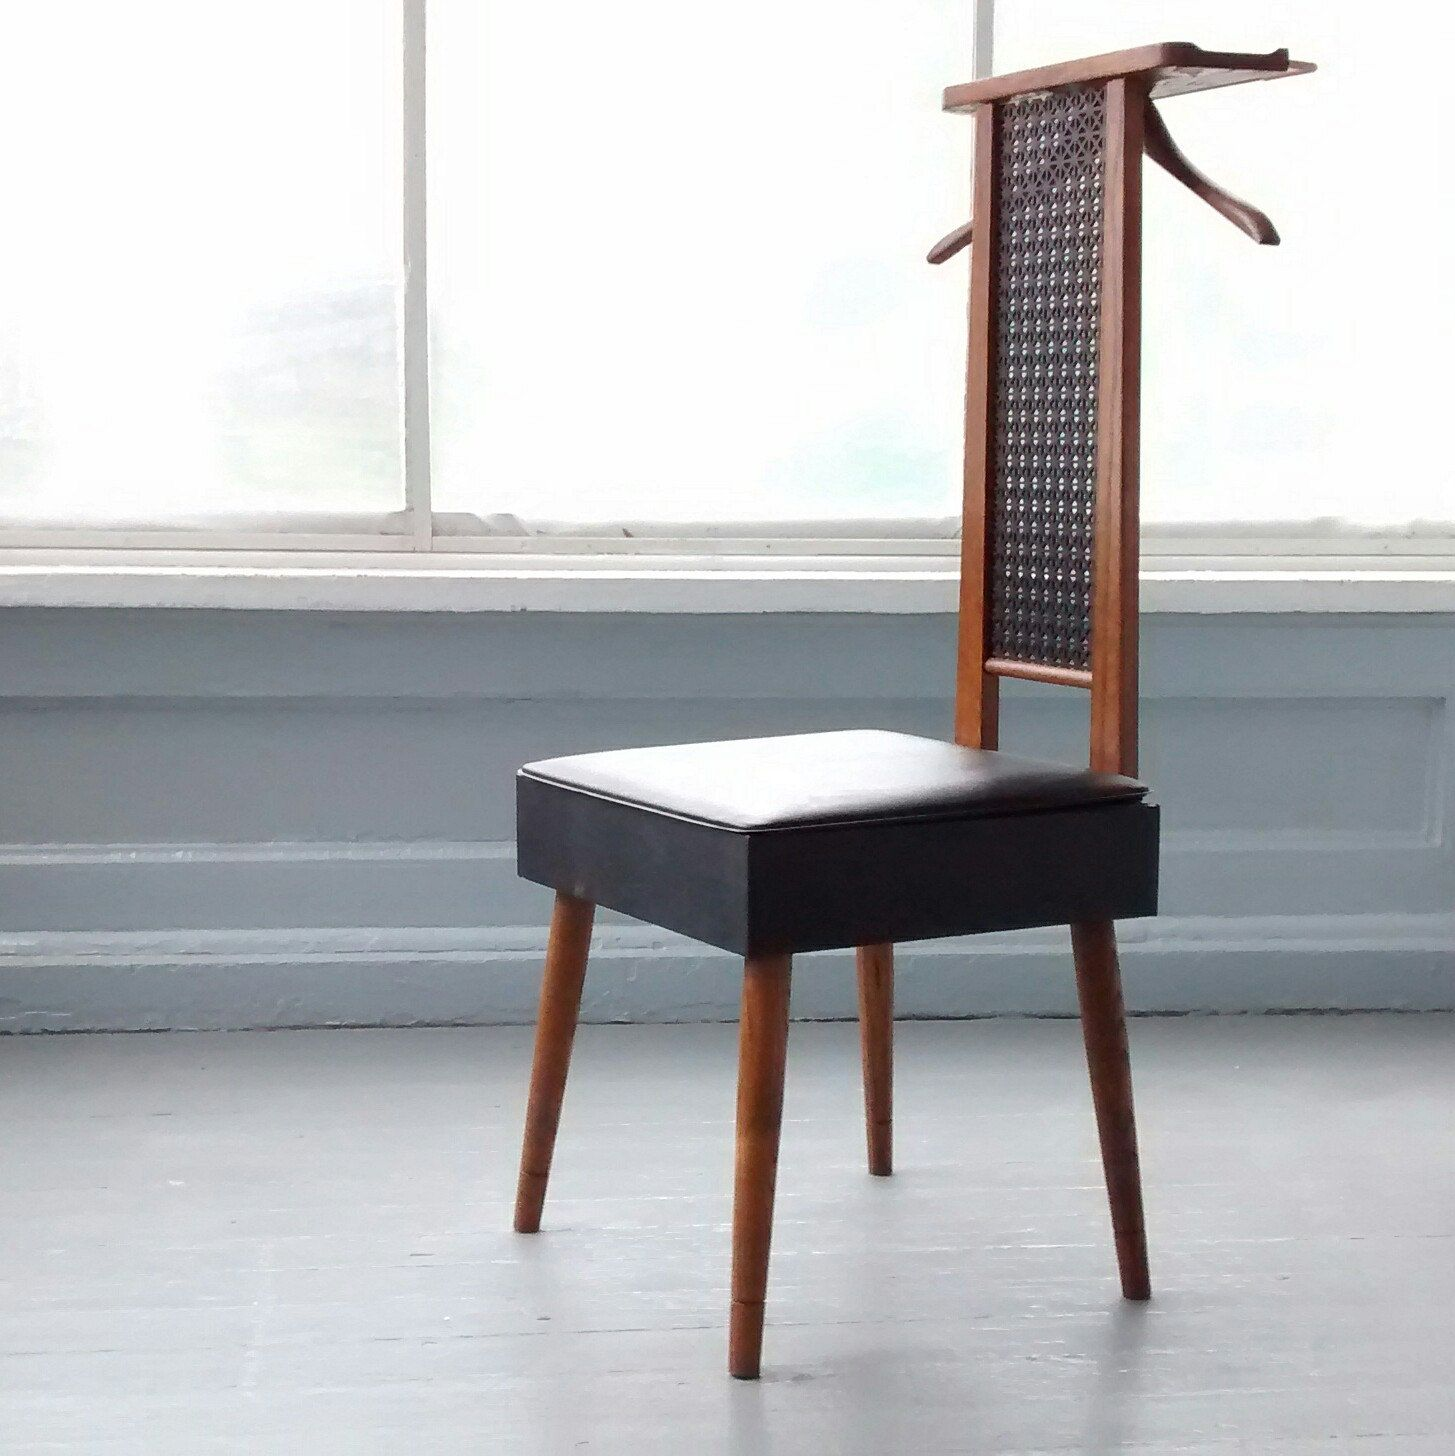 Vintage Valet Butler Chair available in good condition for age